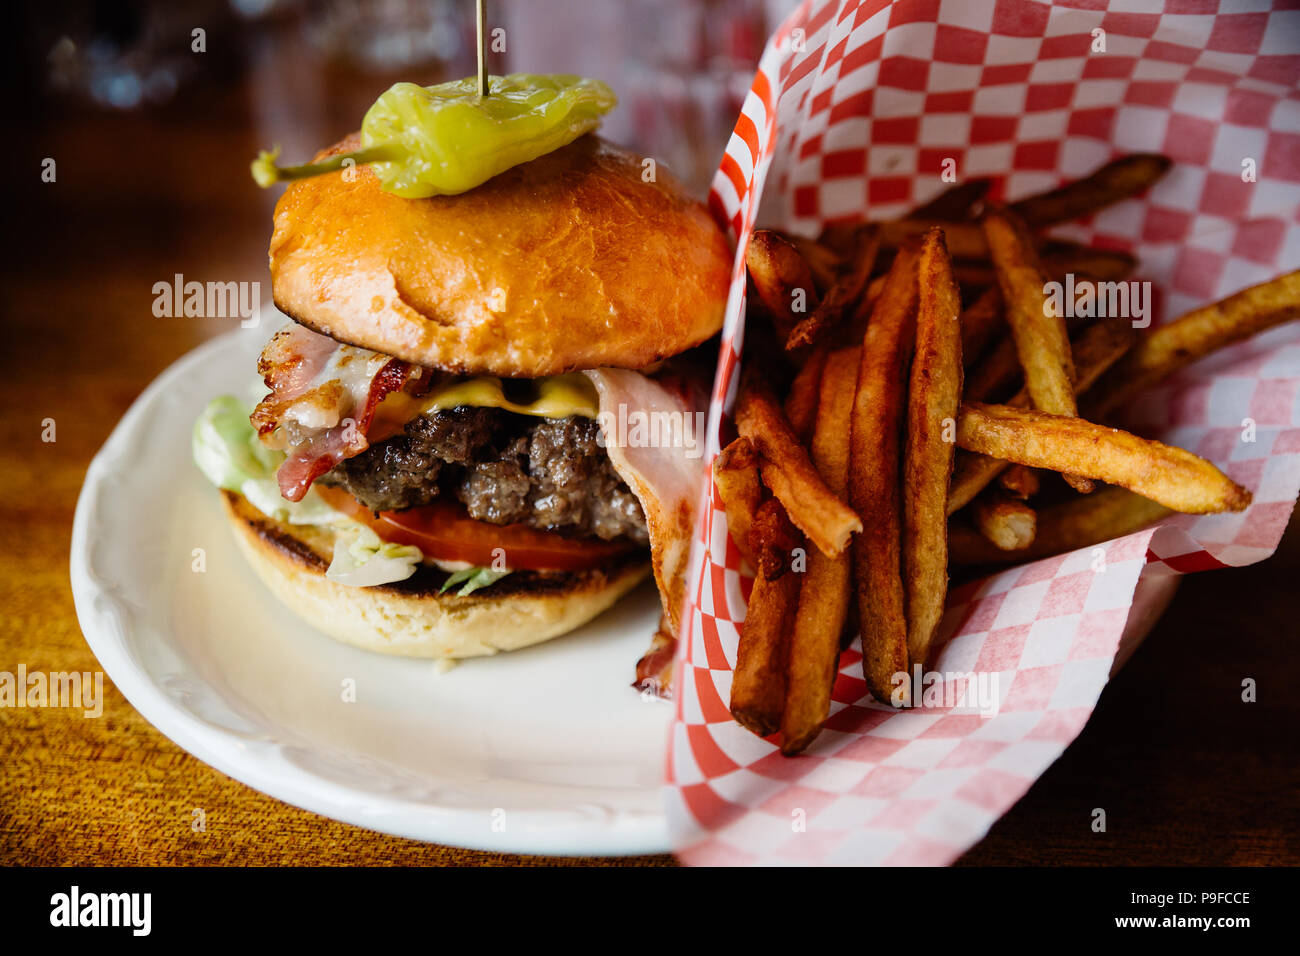 Burger with bacon, cheese and jalapeno pepper and french fries on the side. - Stock Image